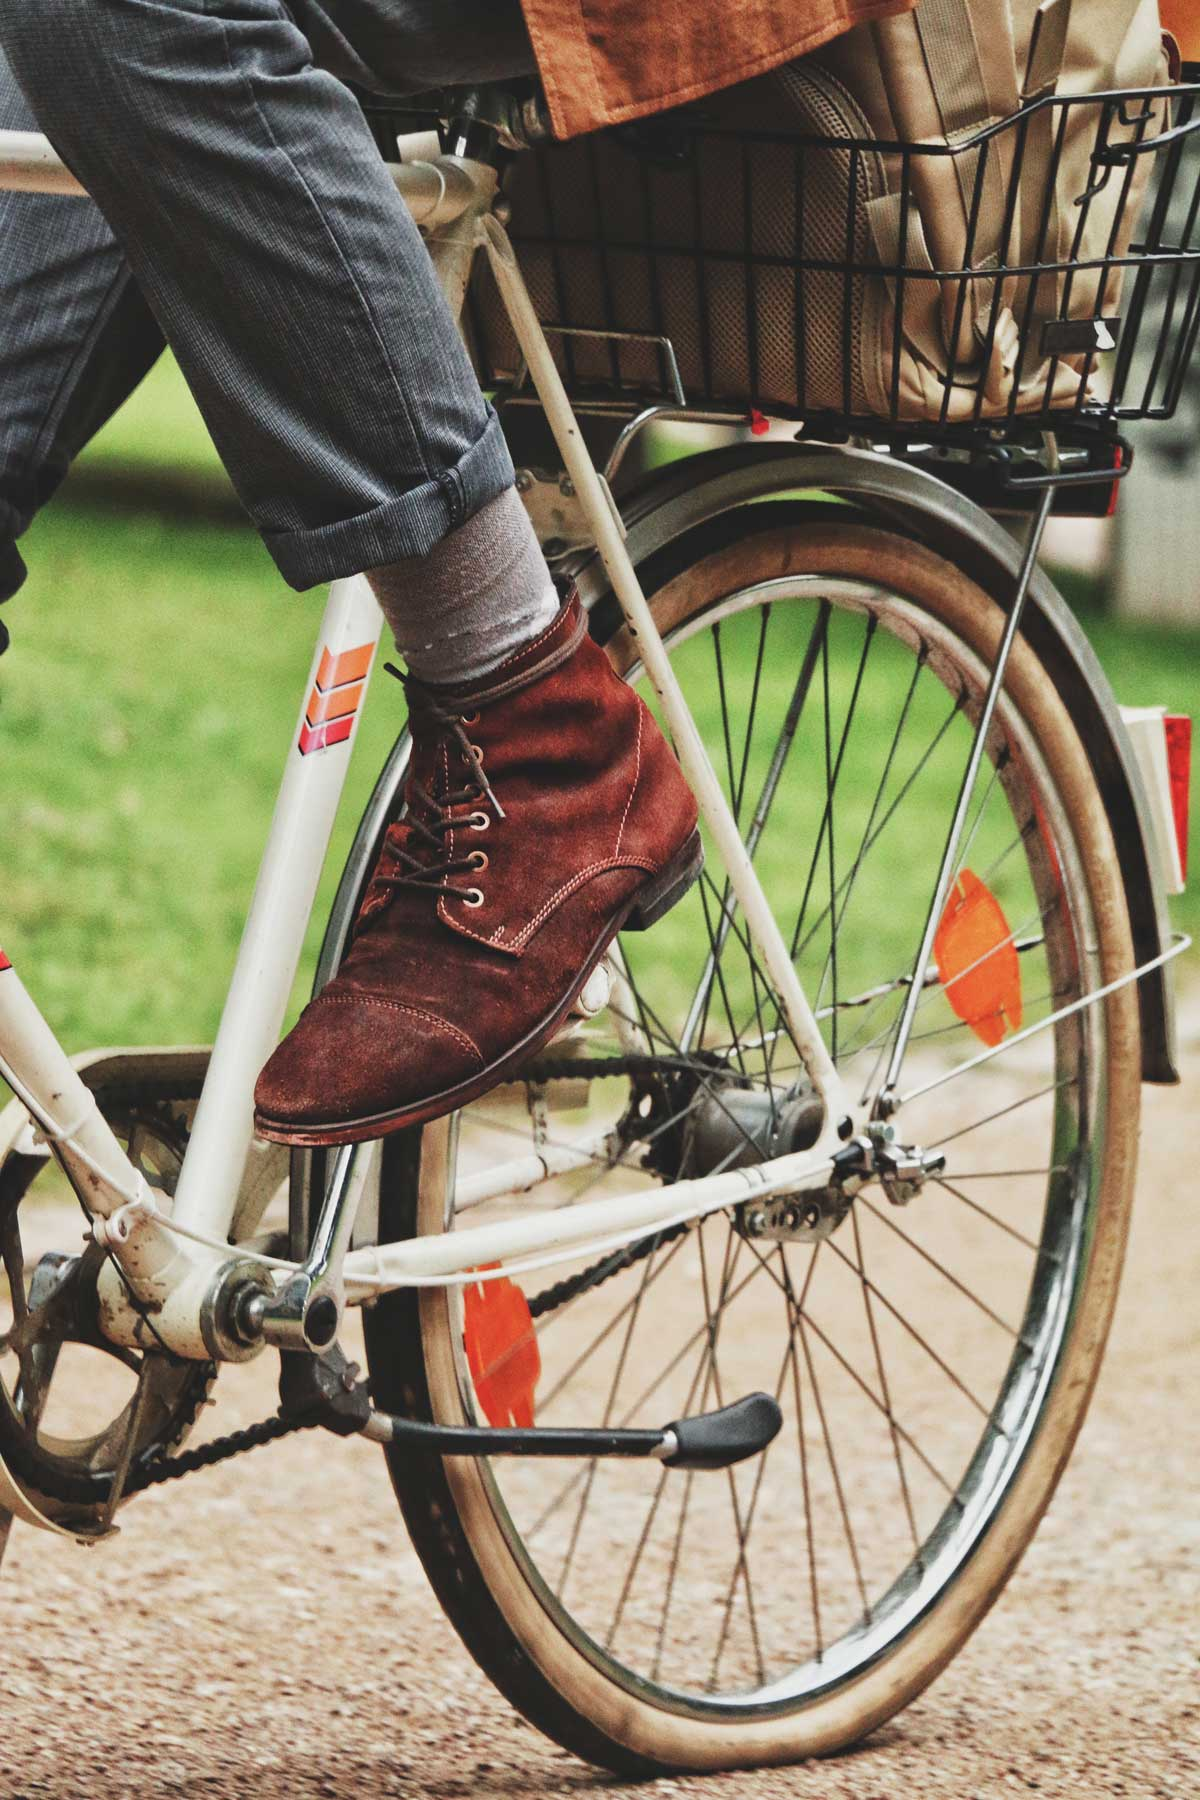 It's Like Riding a Bicycle: Why It's Okay to Fall in Recovery